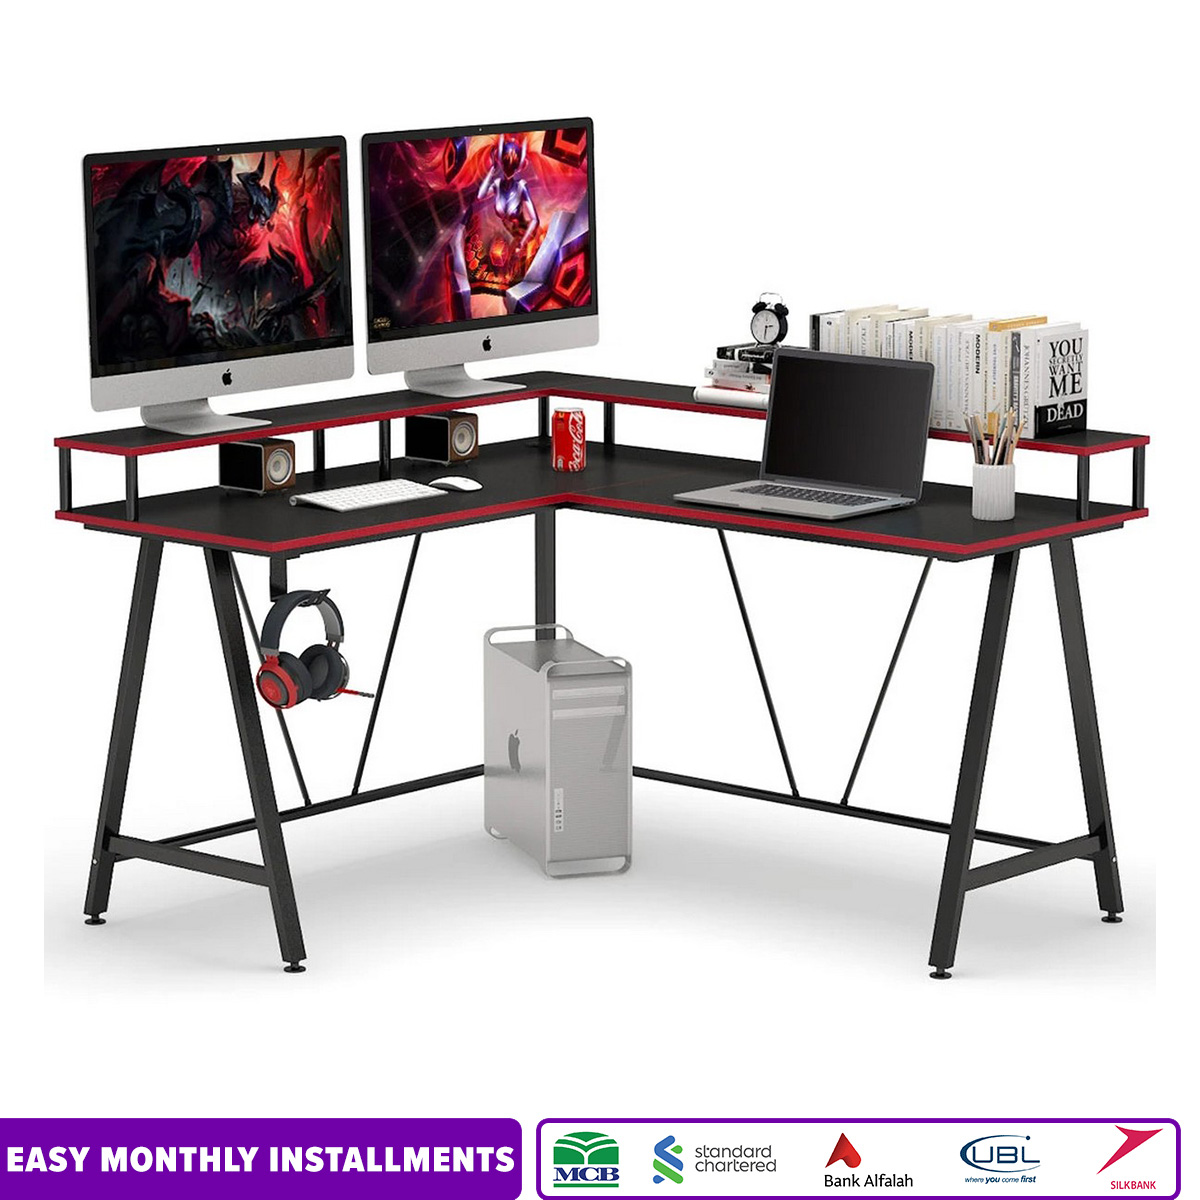 L-Shaped Desk with Shelf, Corner Computer Gaming Desk with Monitor Stand for Home Office and Gamer, Large PC Laptop Study Writing Table Workstation